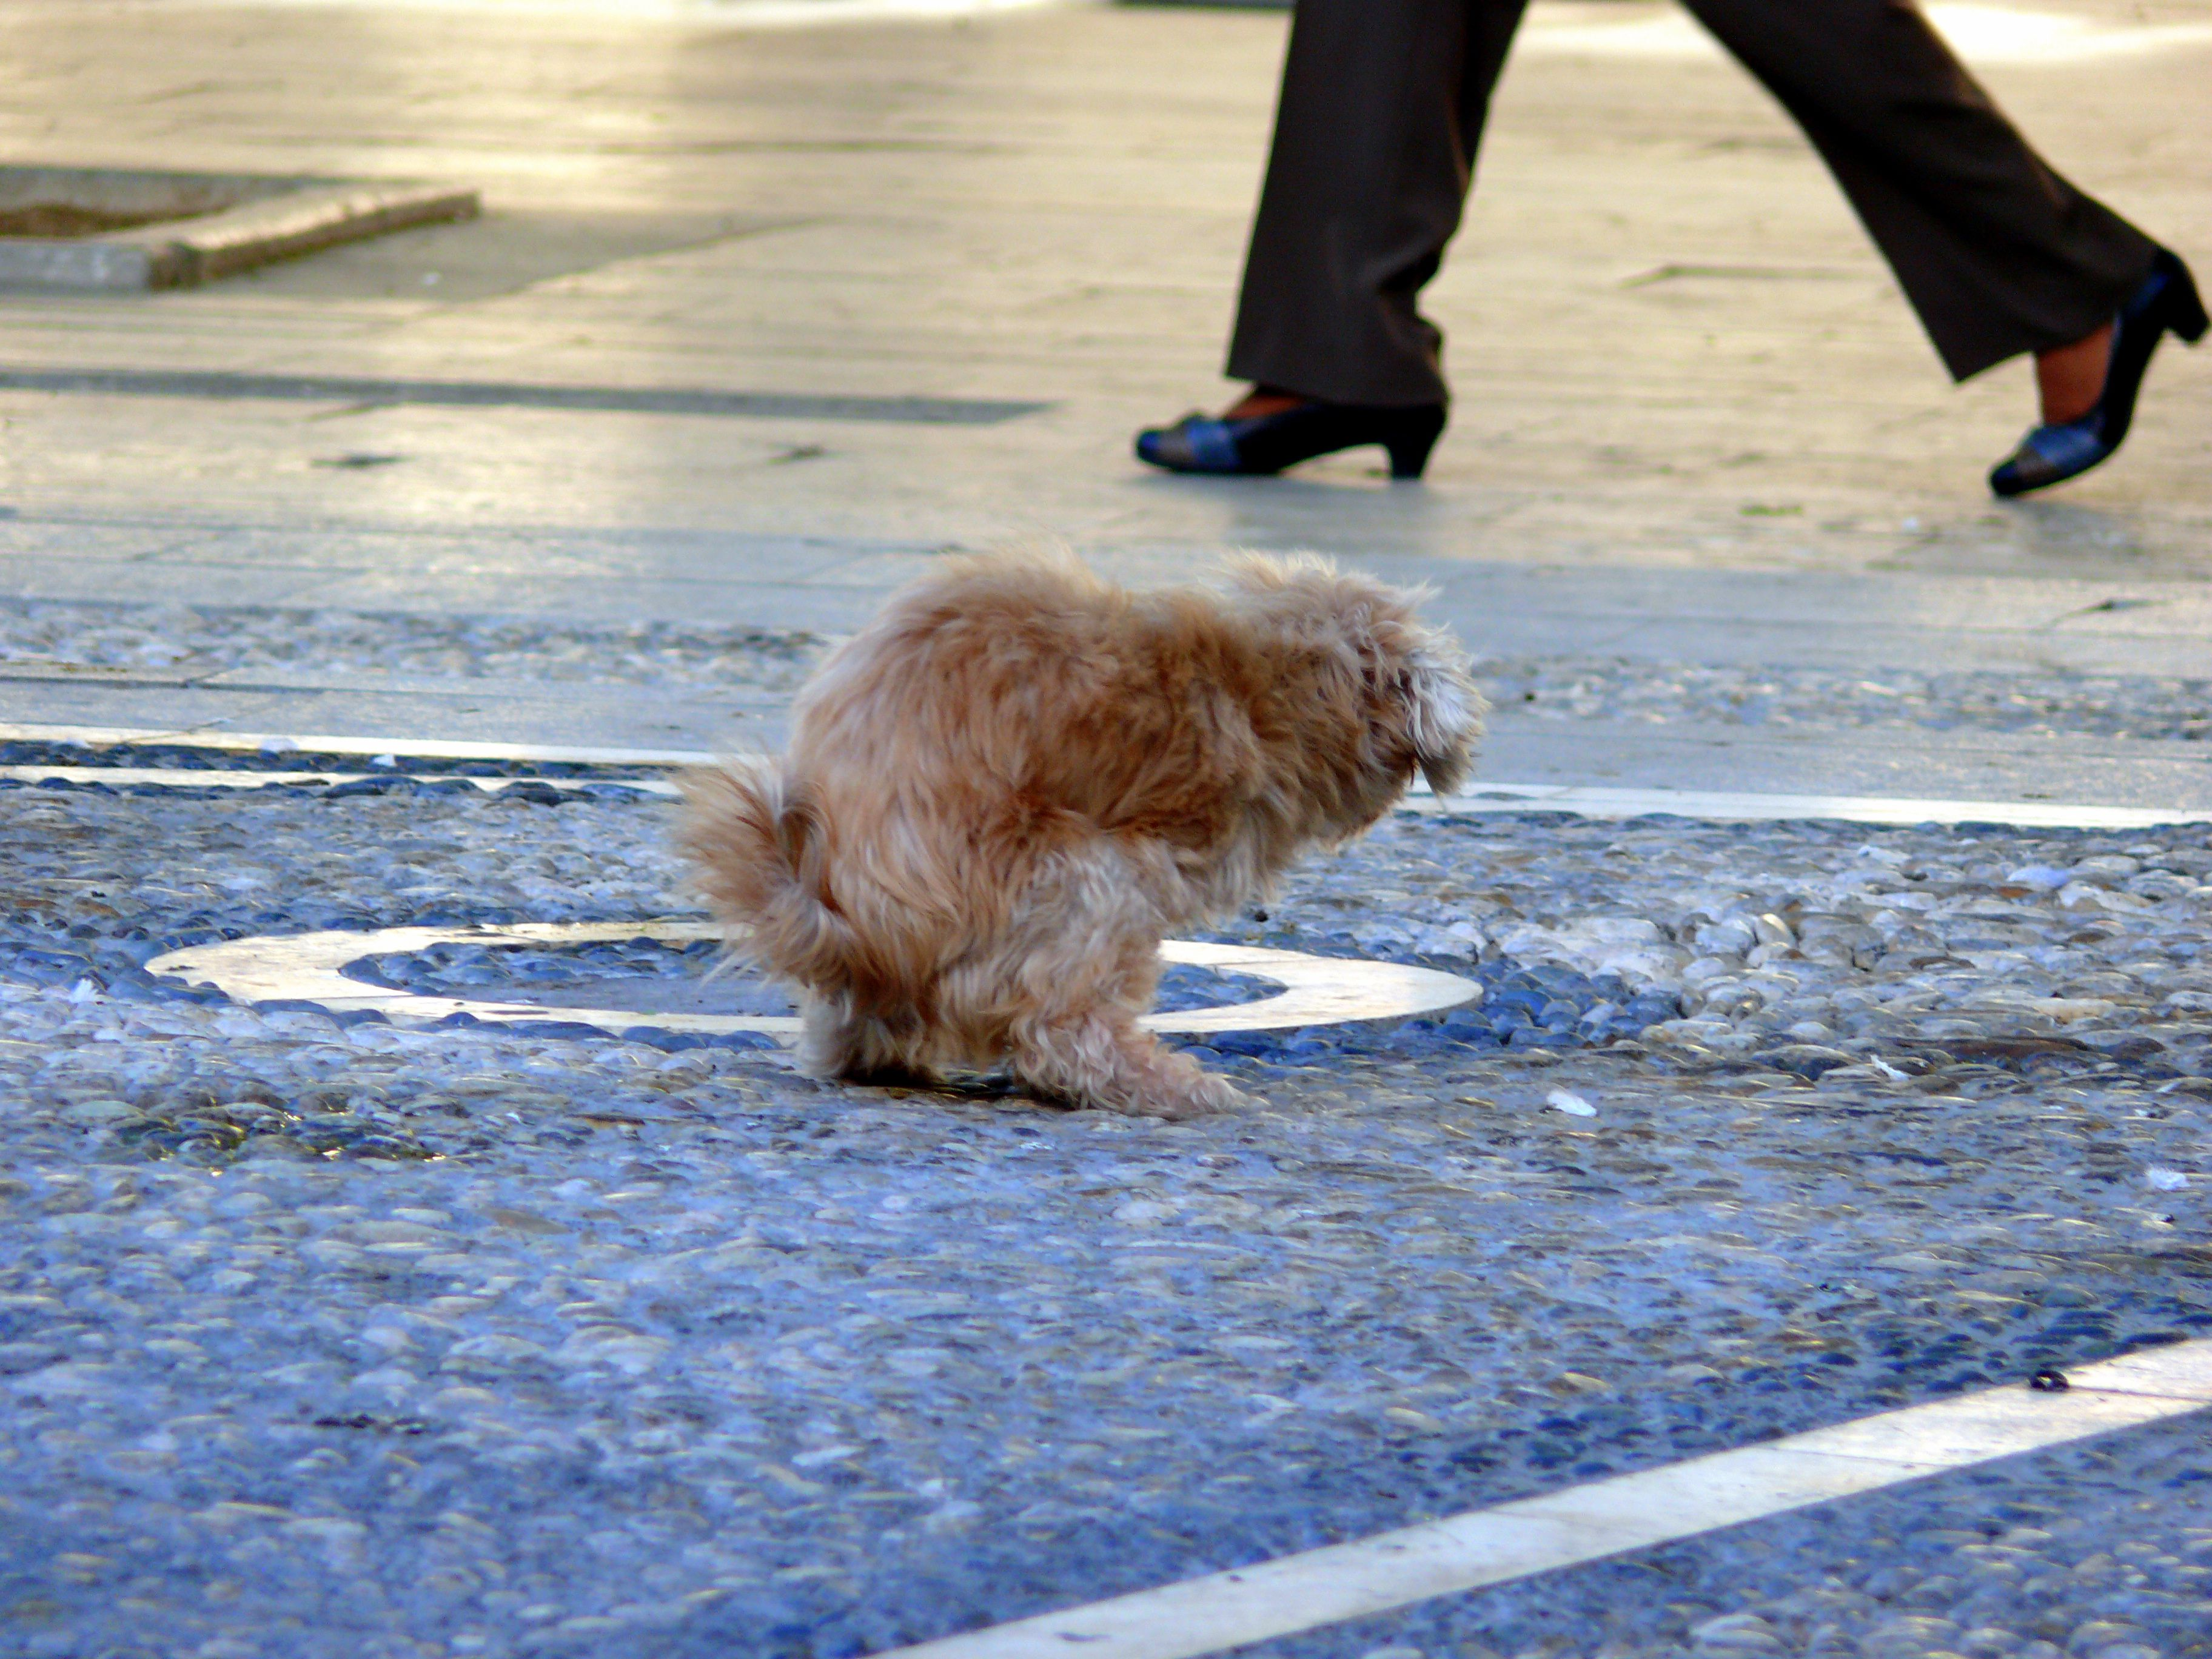 Dog urinating downward in a crouched position